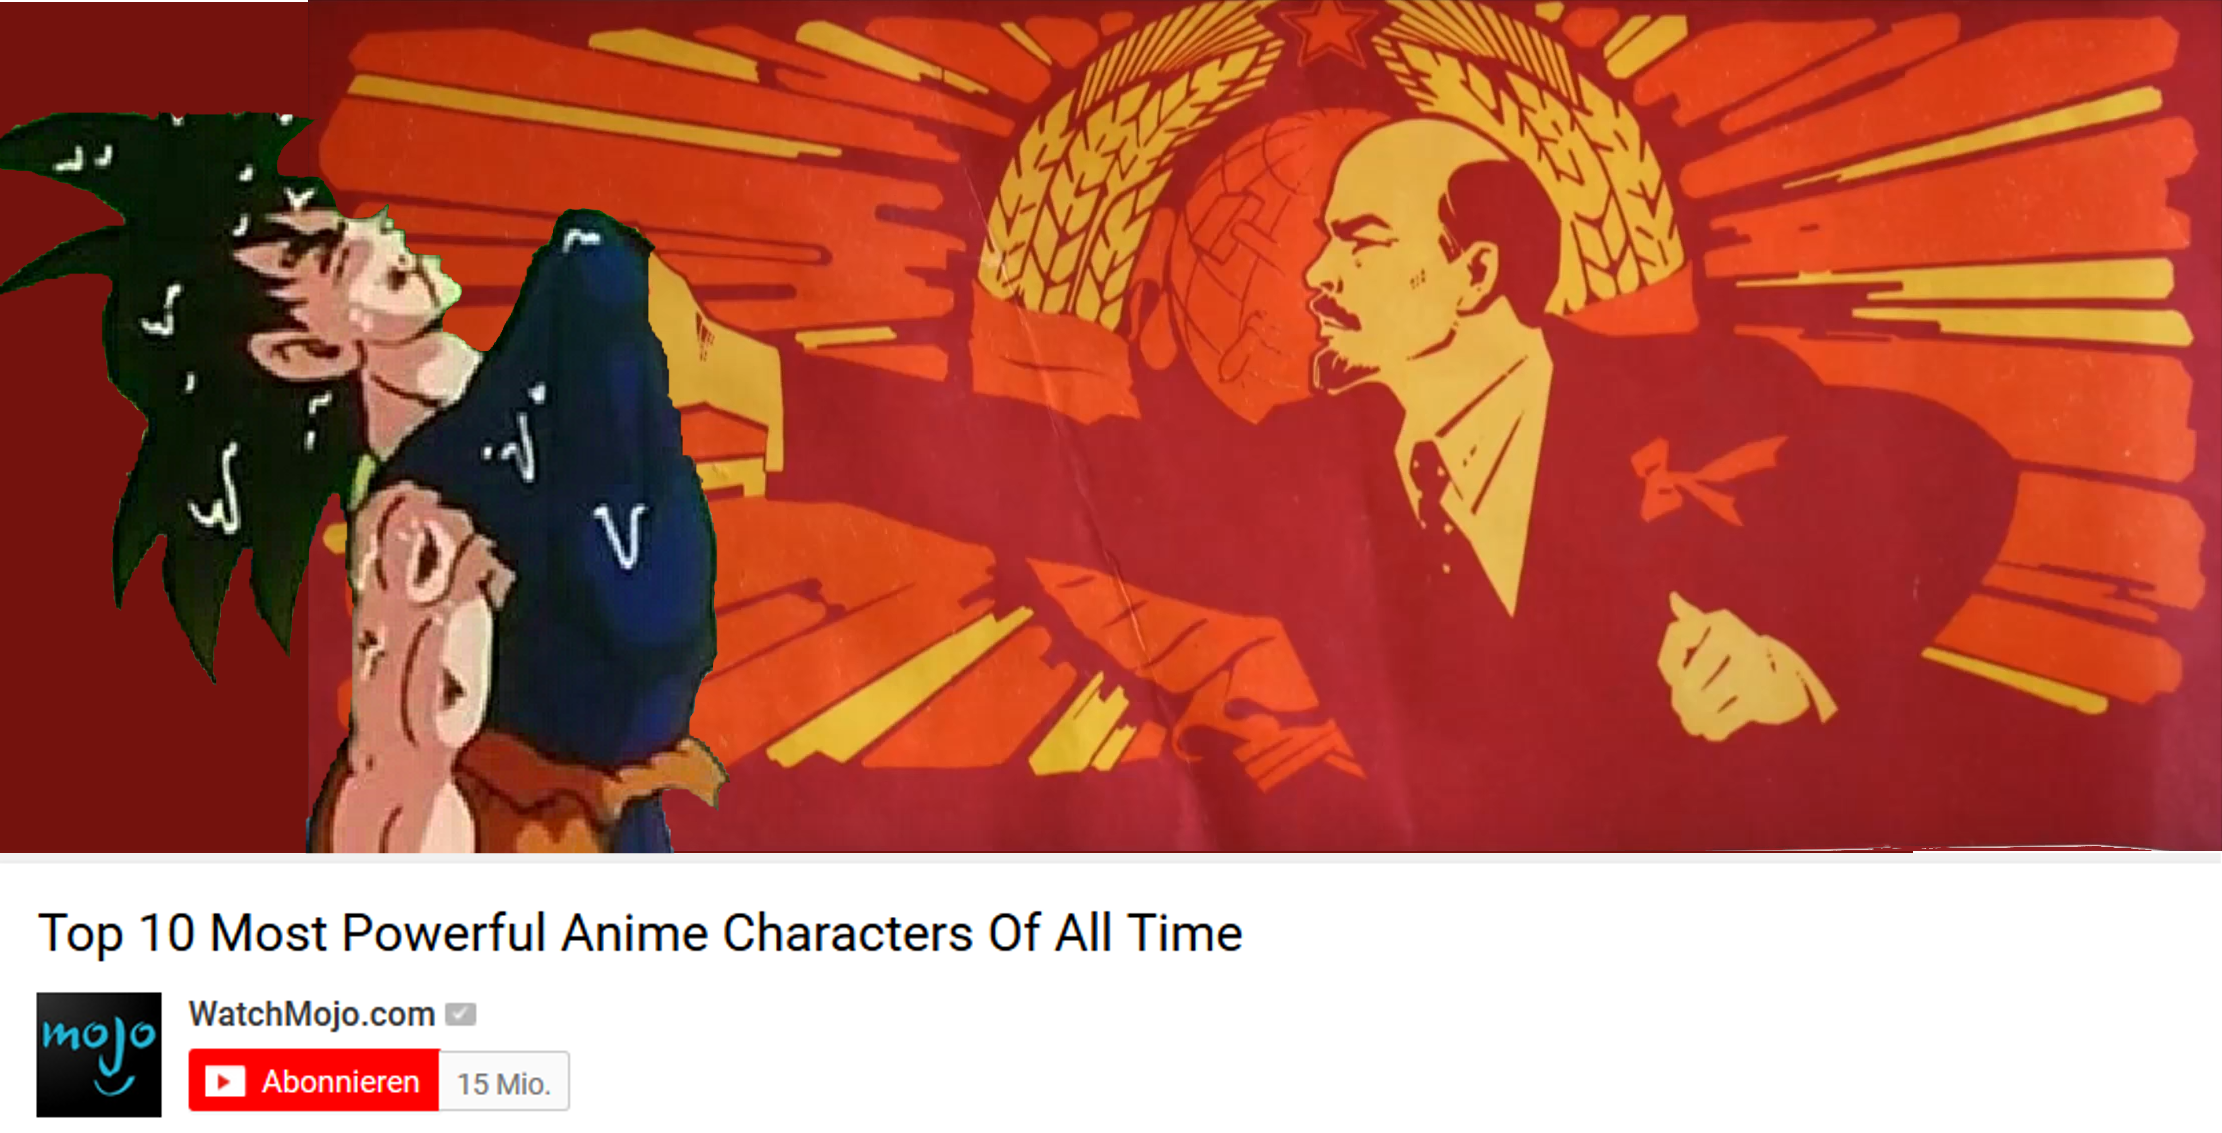 Top 10 Most Powerful Anime Characters Of All Time WatchMojo Abonnieren 15 Mio